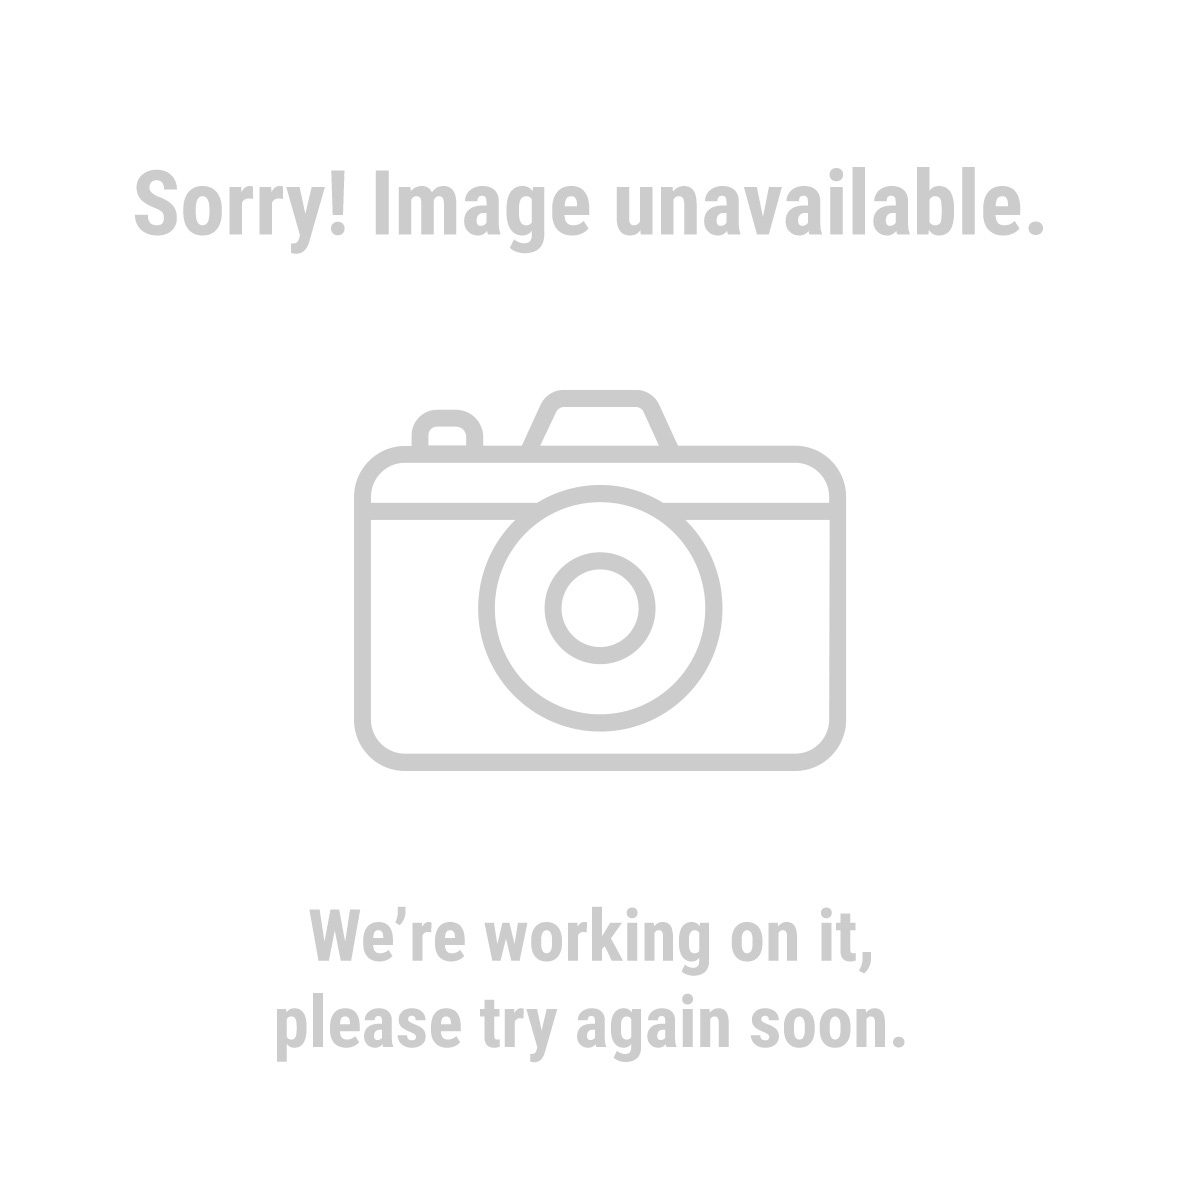 Pittsburgh® 39391 40 Piece Carbon Steel SAE Tap and Die Set